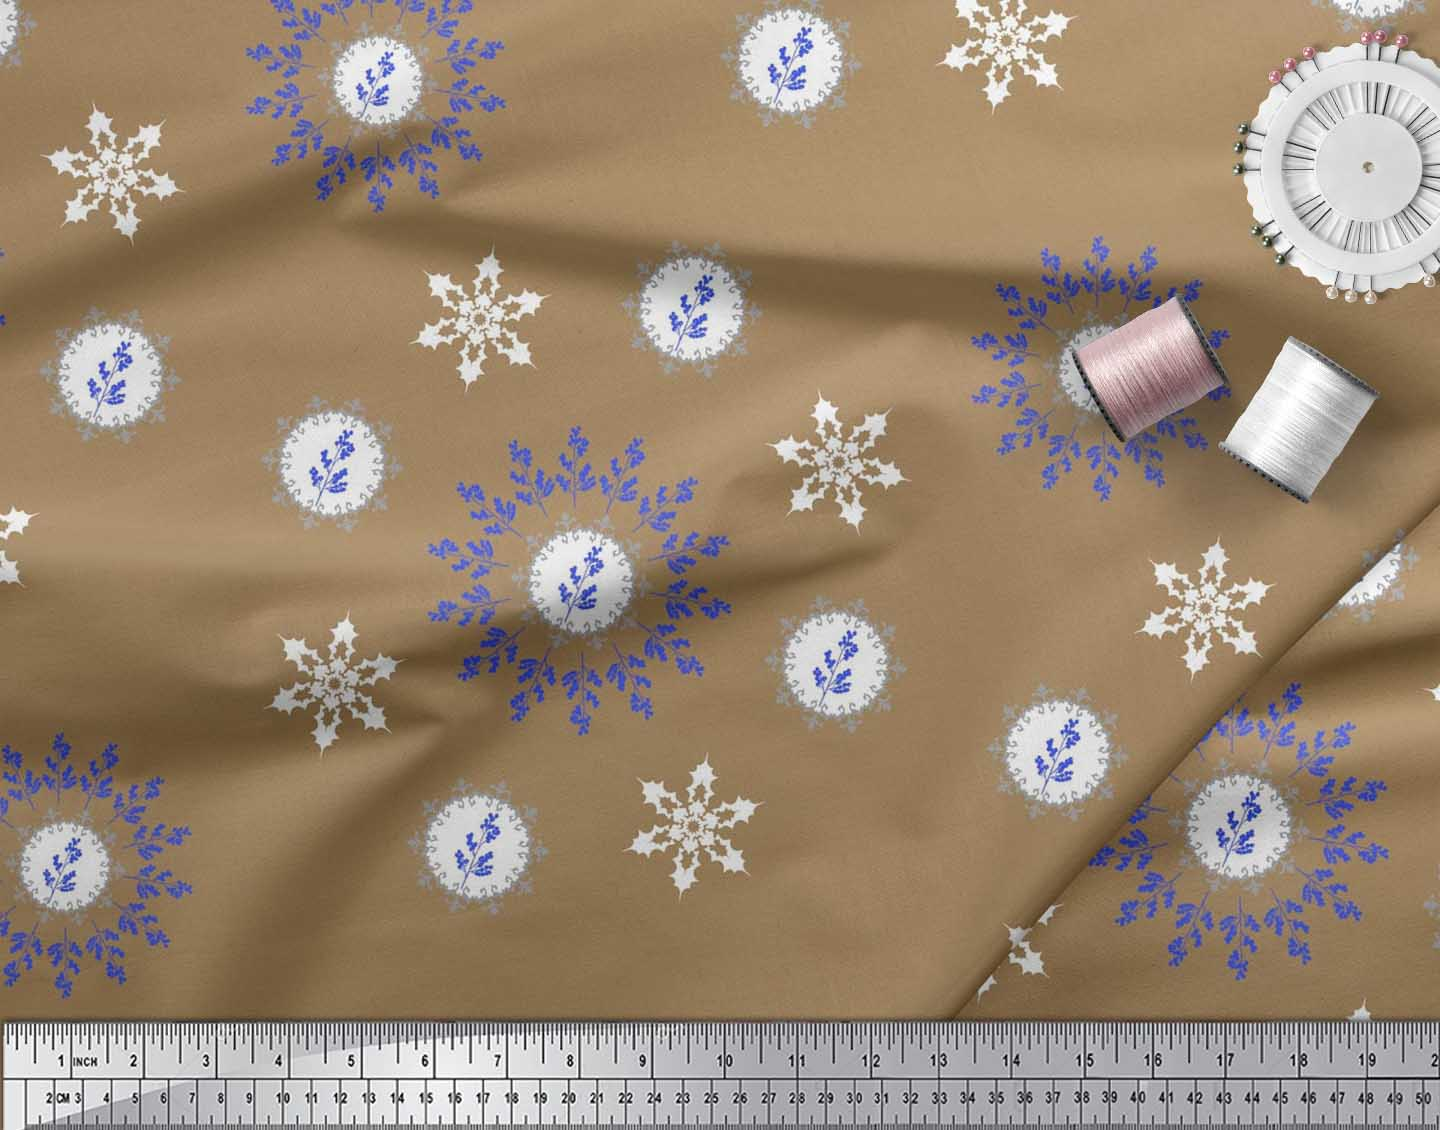 Soimoi-Fabric-Berries-amp-Damask-Decorative-Printed-Craft-Fabric-bty-DC-513A thumbnail 16